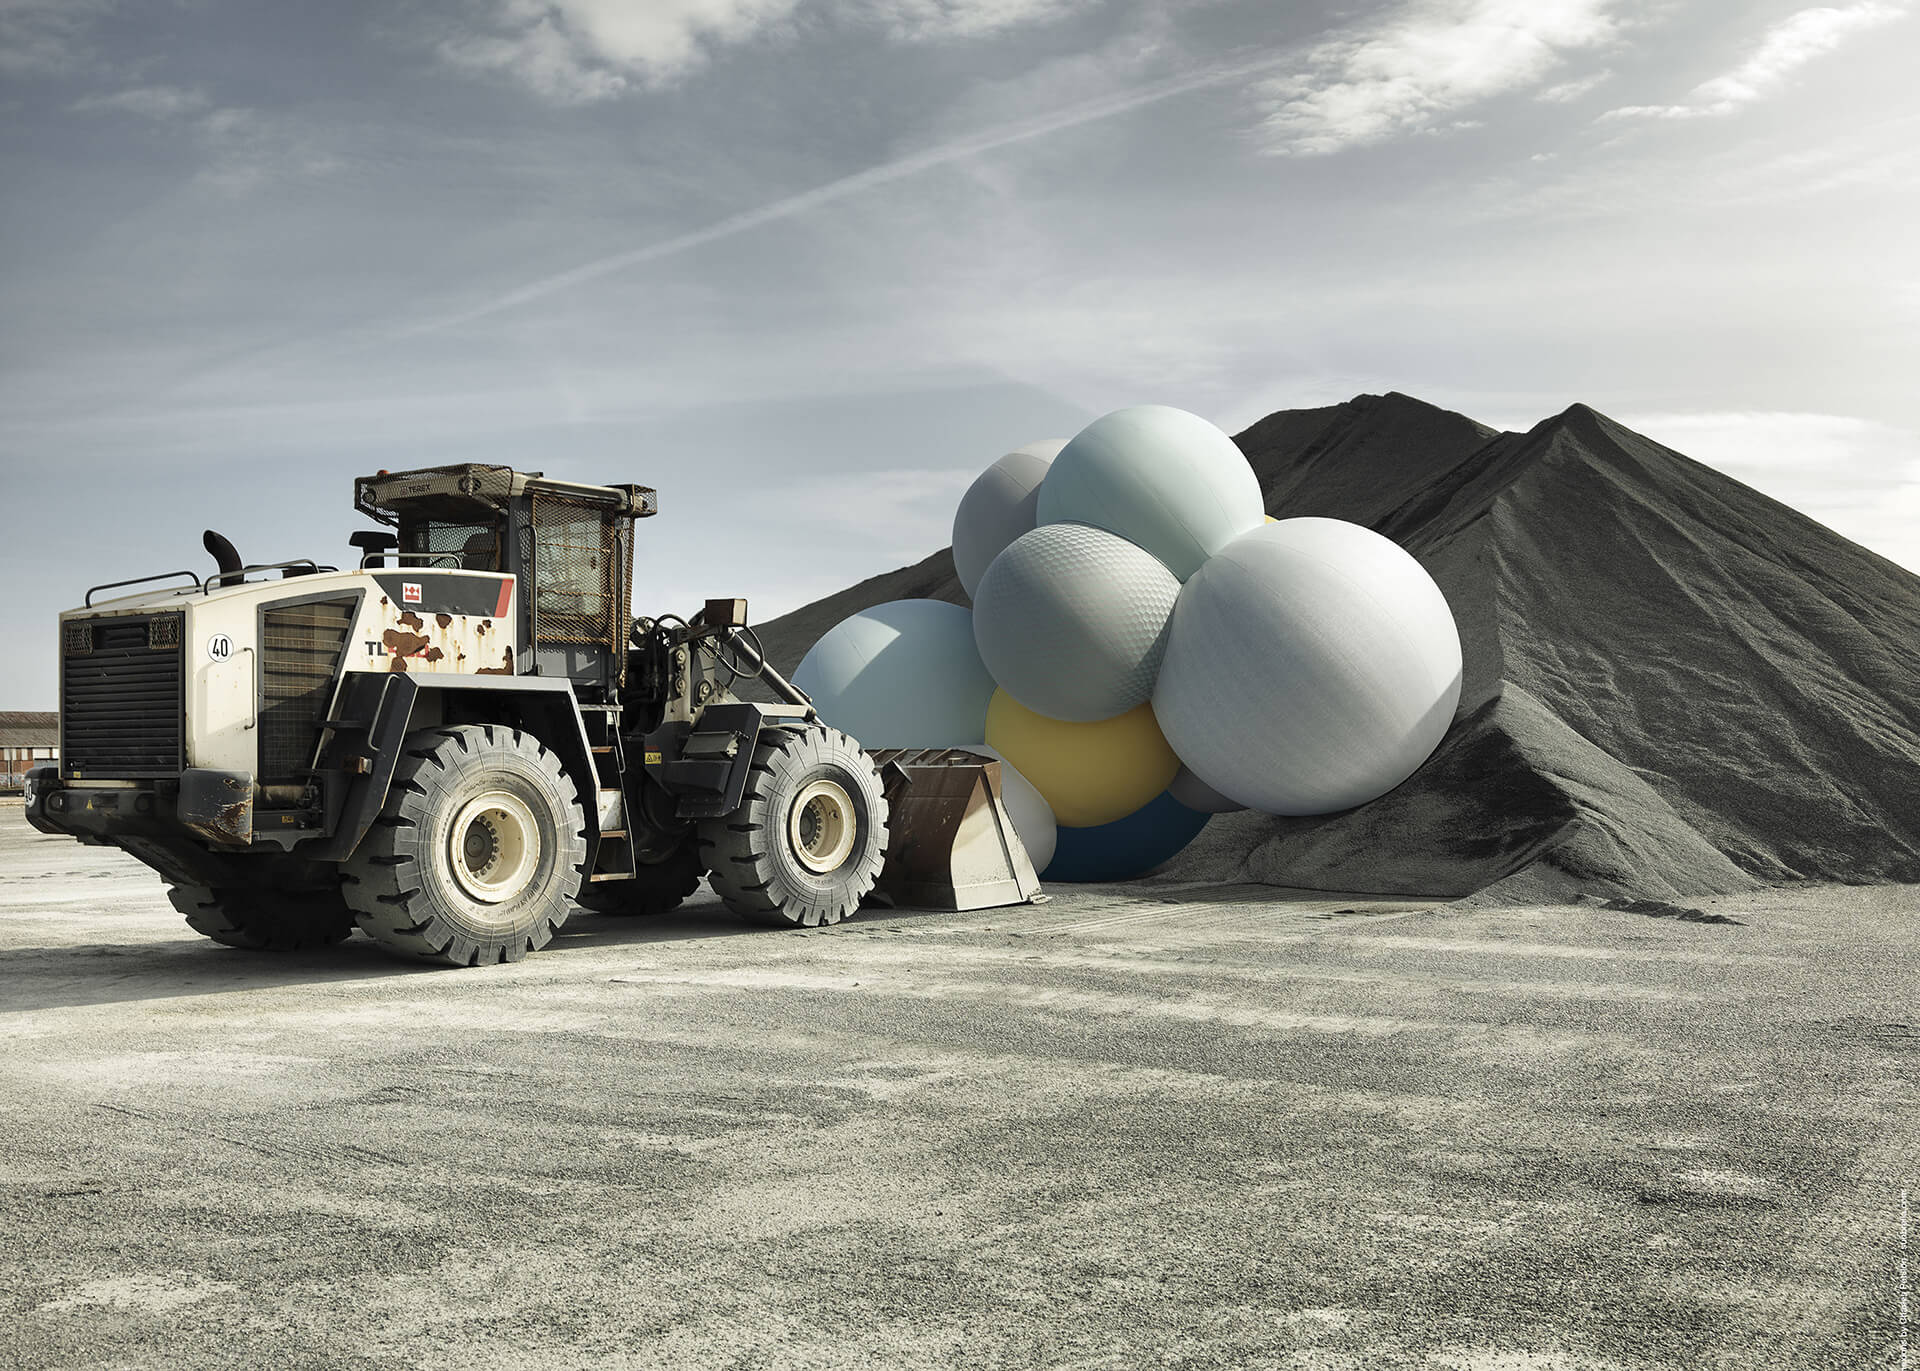 A bulldozer pushes the Sunbrella Connexion balloons by artist Charles Petillon.